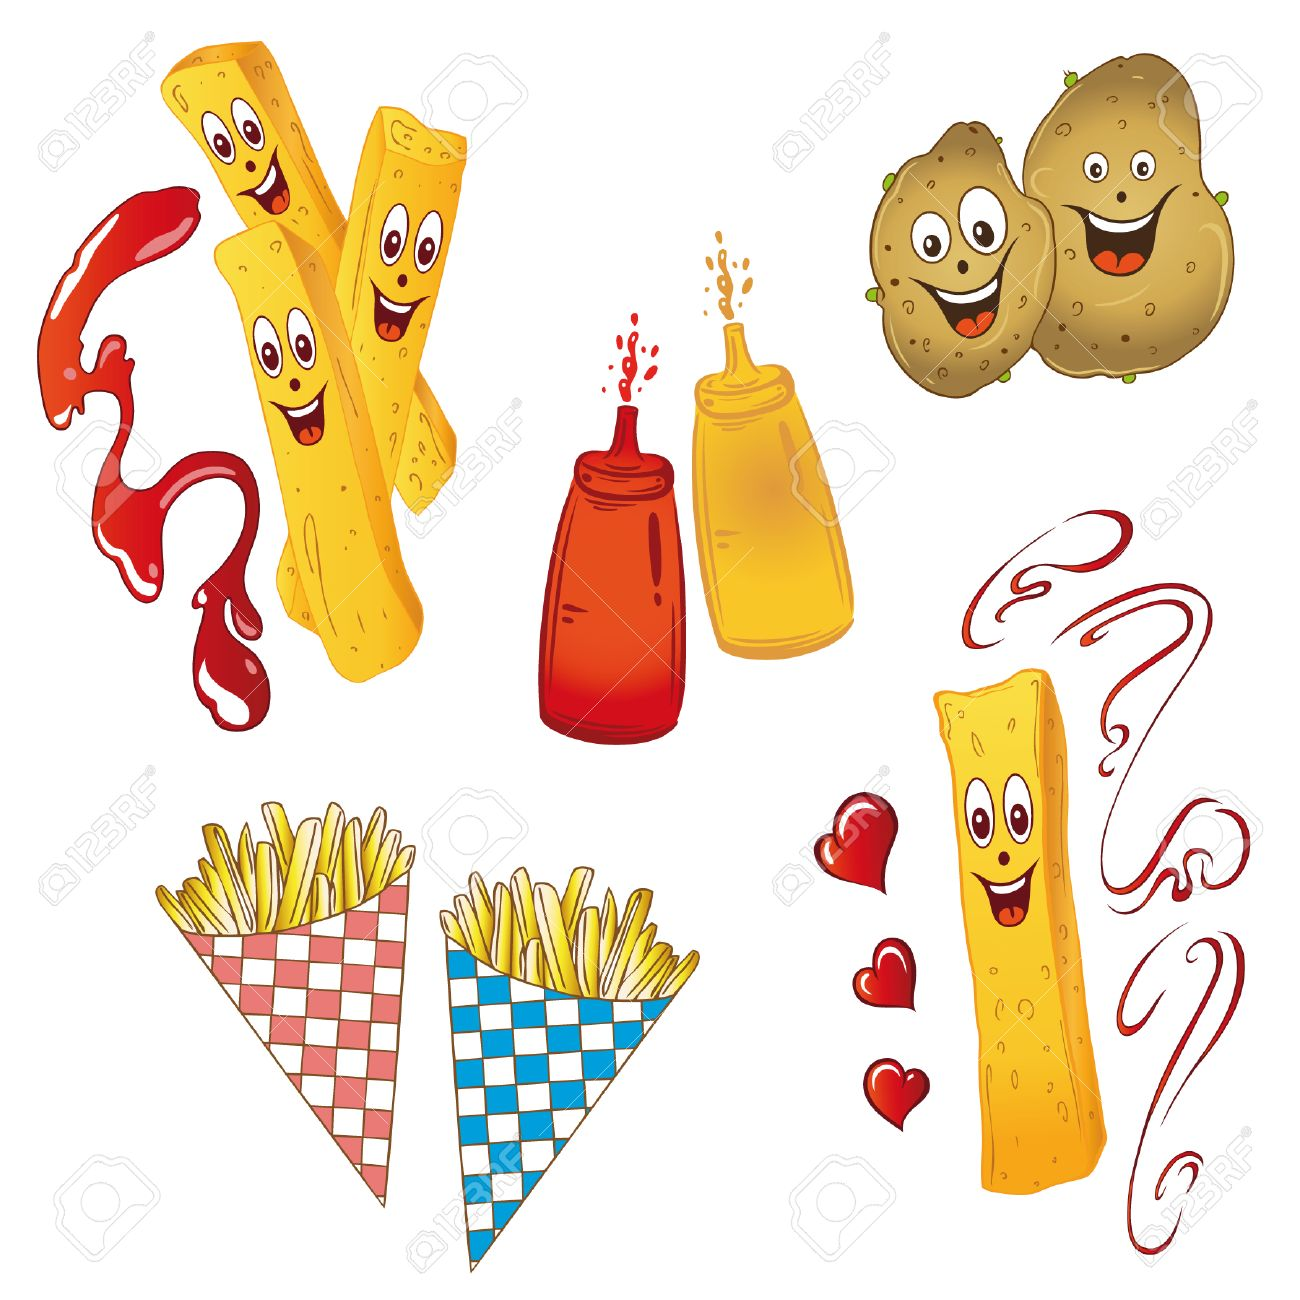 Potatoes and french fries, vector set Standard-Bild - 22787756